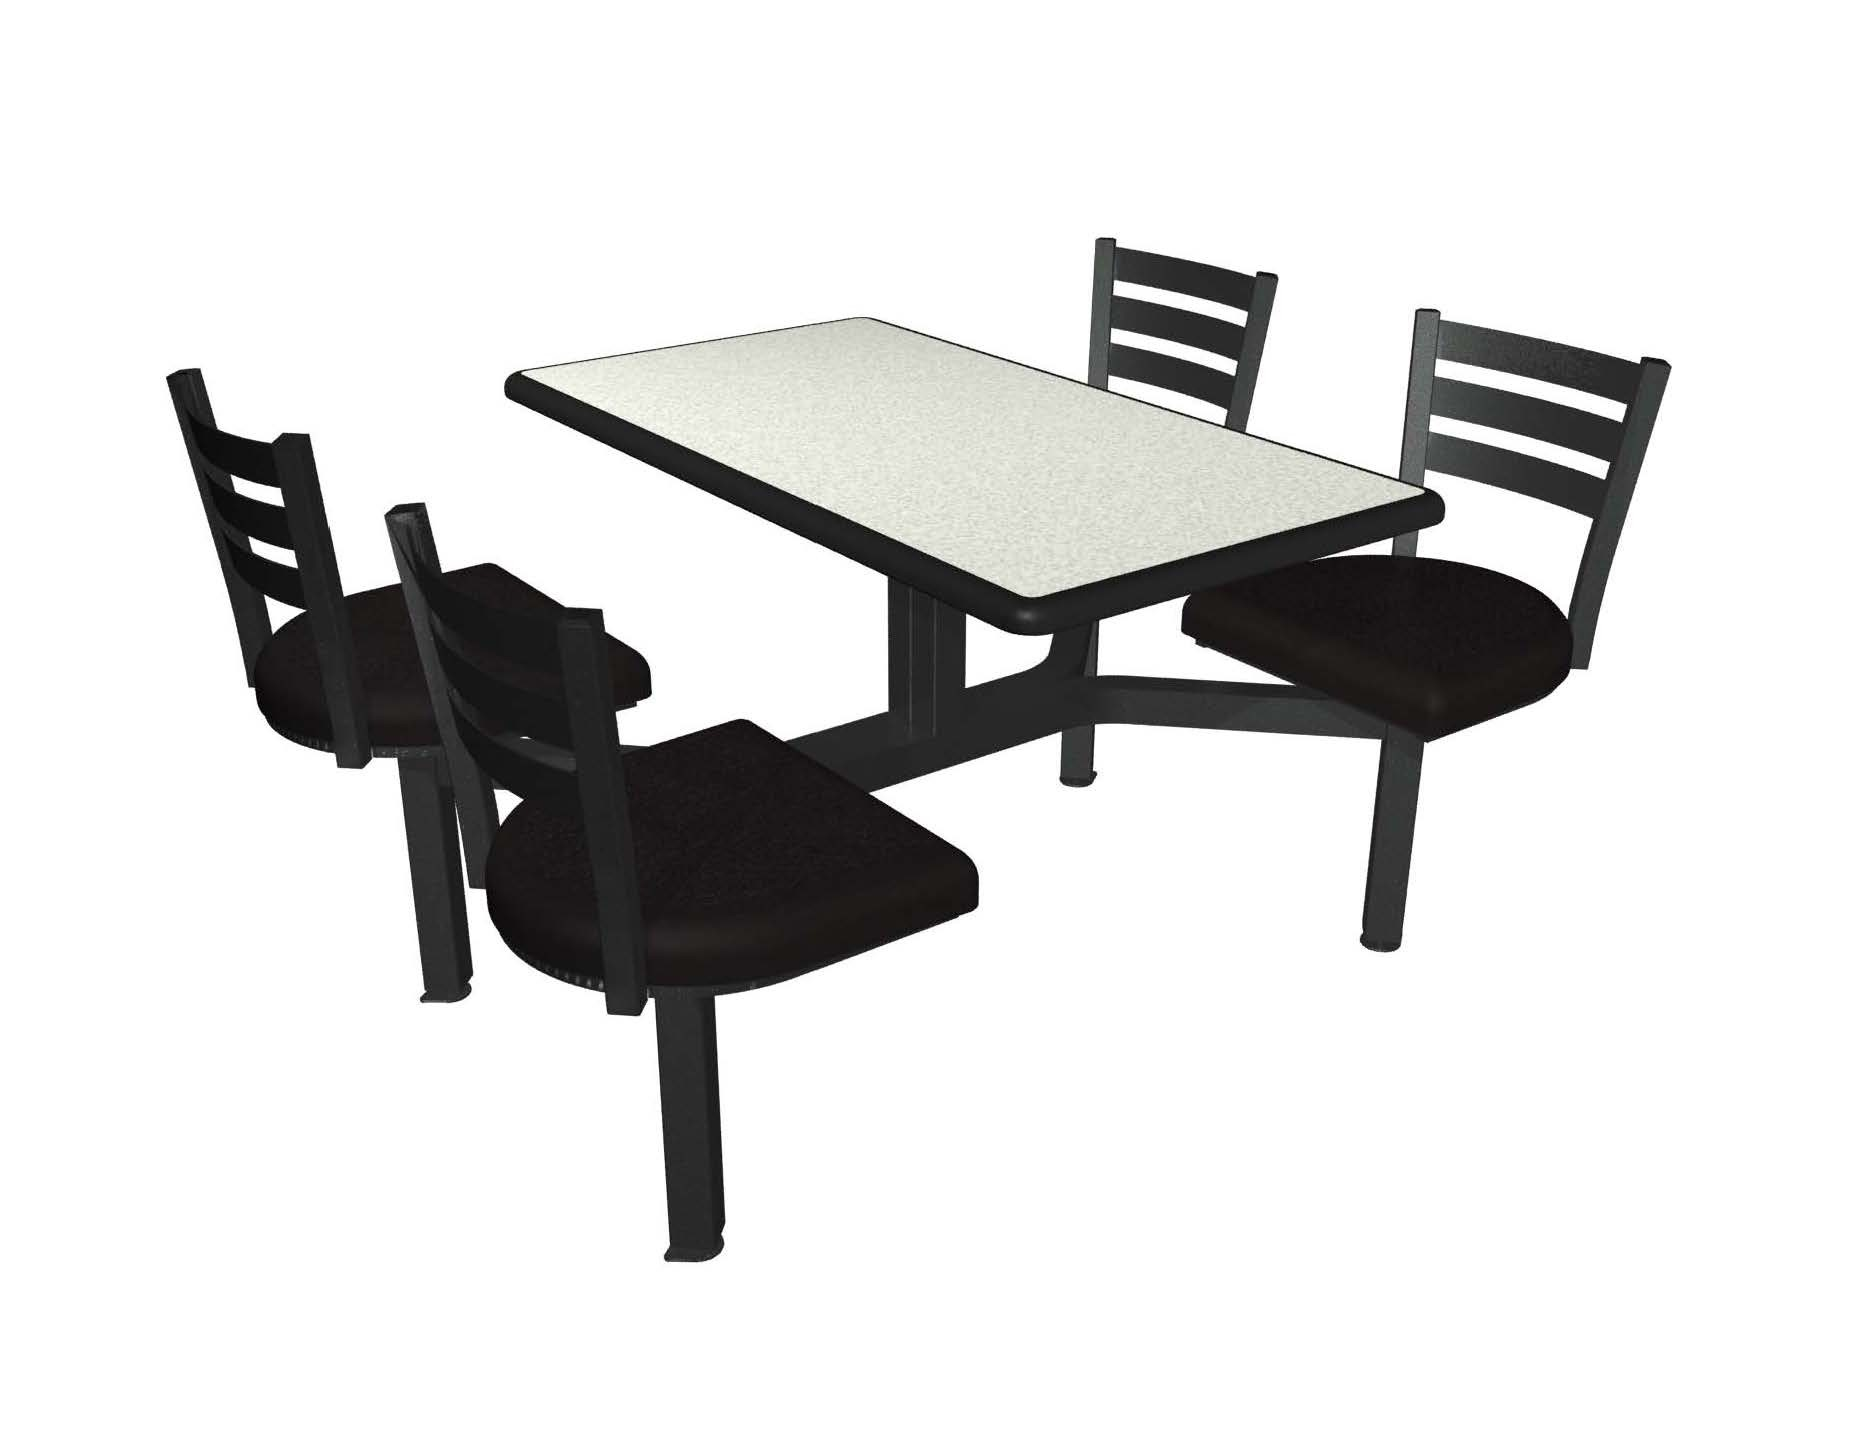 White Nebula laminate table top, Black Dur-A-Edge, Quest chairhead black vinyl seat